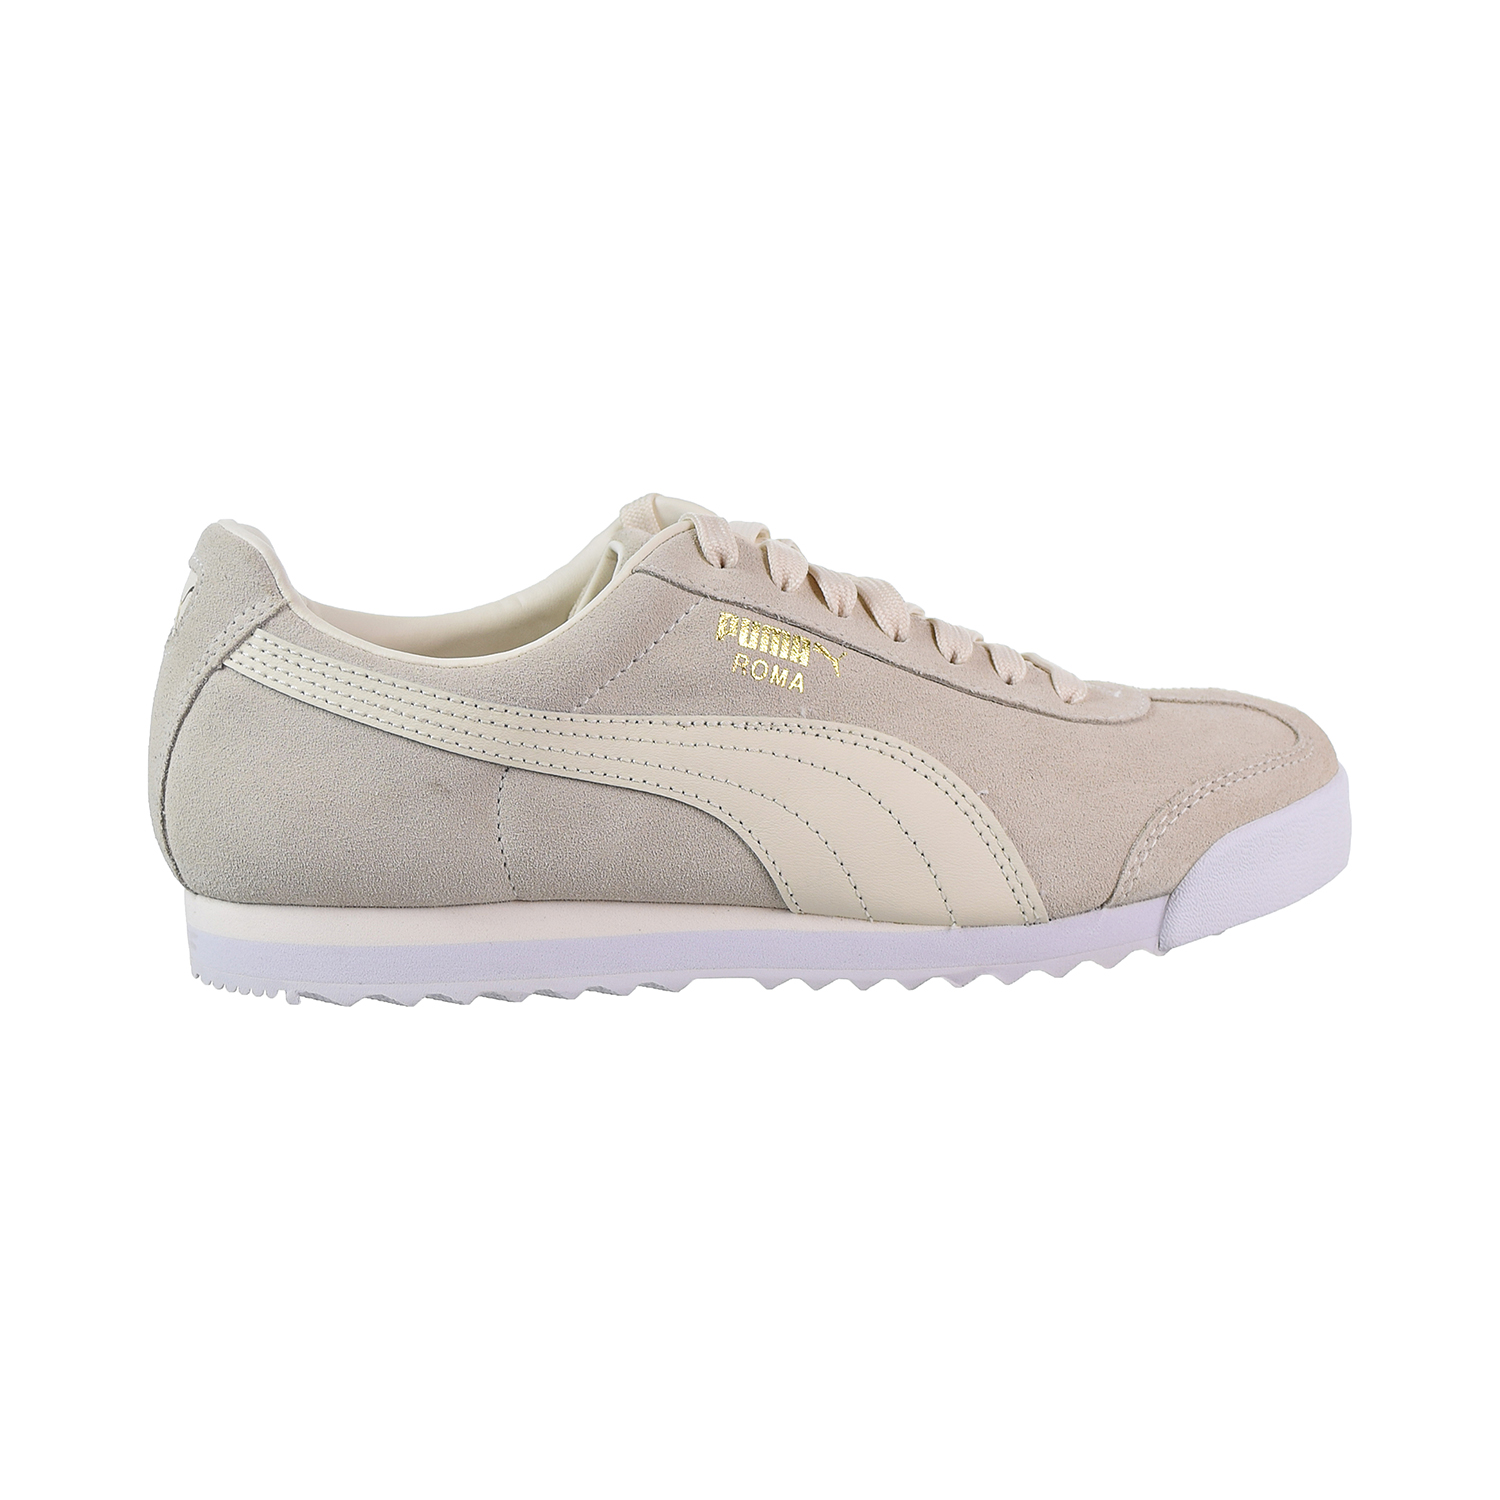 Details about Puma Roma Suede Men's Shoes Whisper White 365437 07